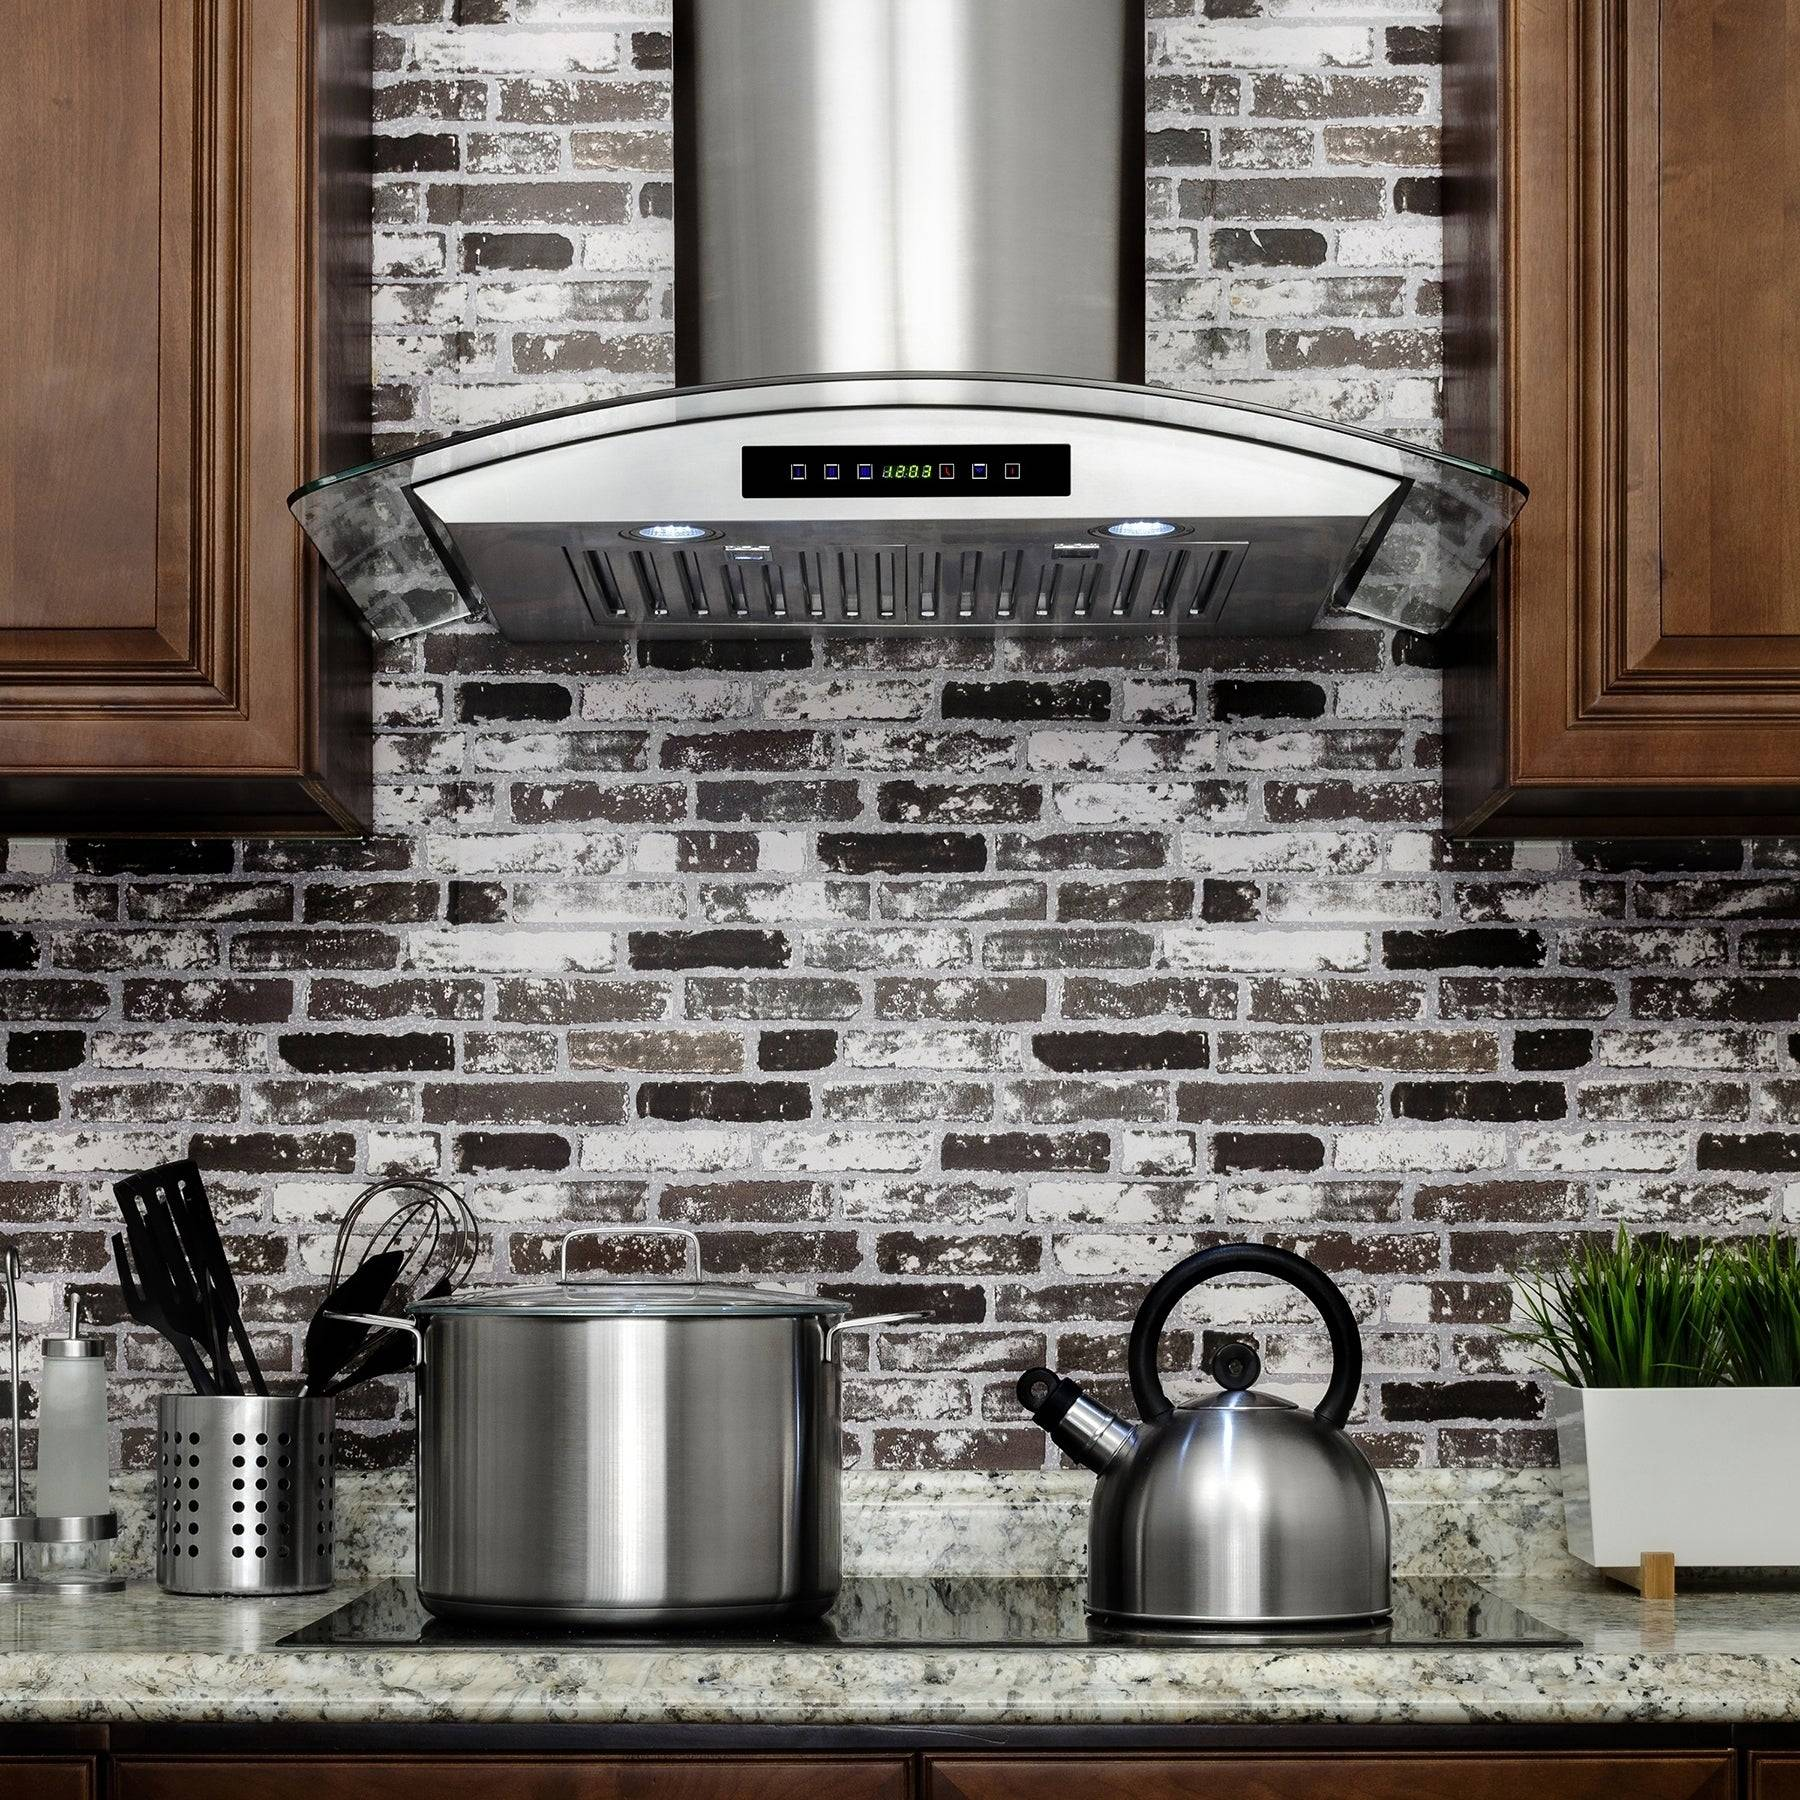 AKDY RH0270 30 in Convertible Wall Mount Range Hood in Stainless Steel with Tempered Glass Touch Control and Carbon Filters 86ef9fb2 a4df 49fe 89ef cc41cc